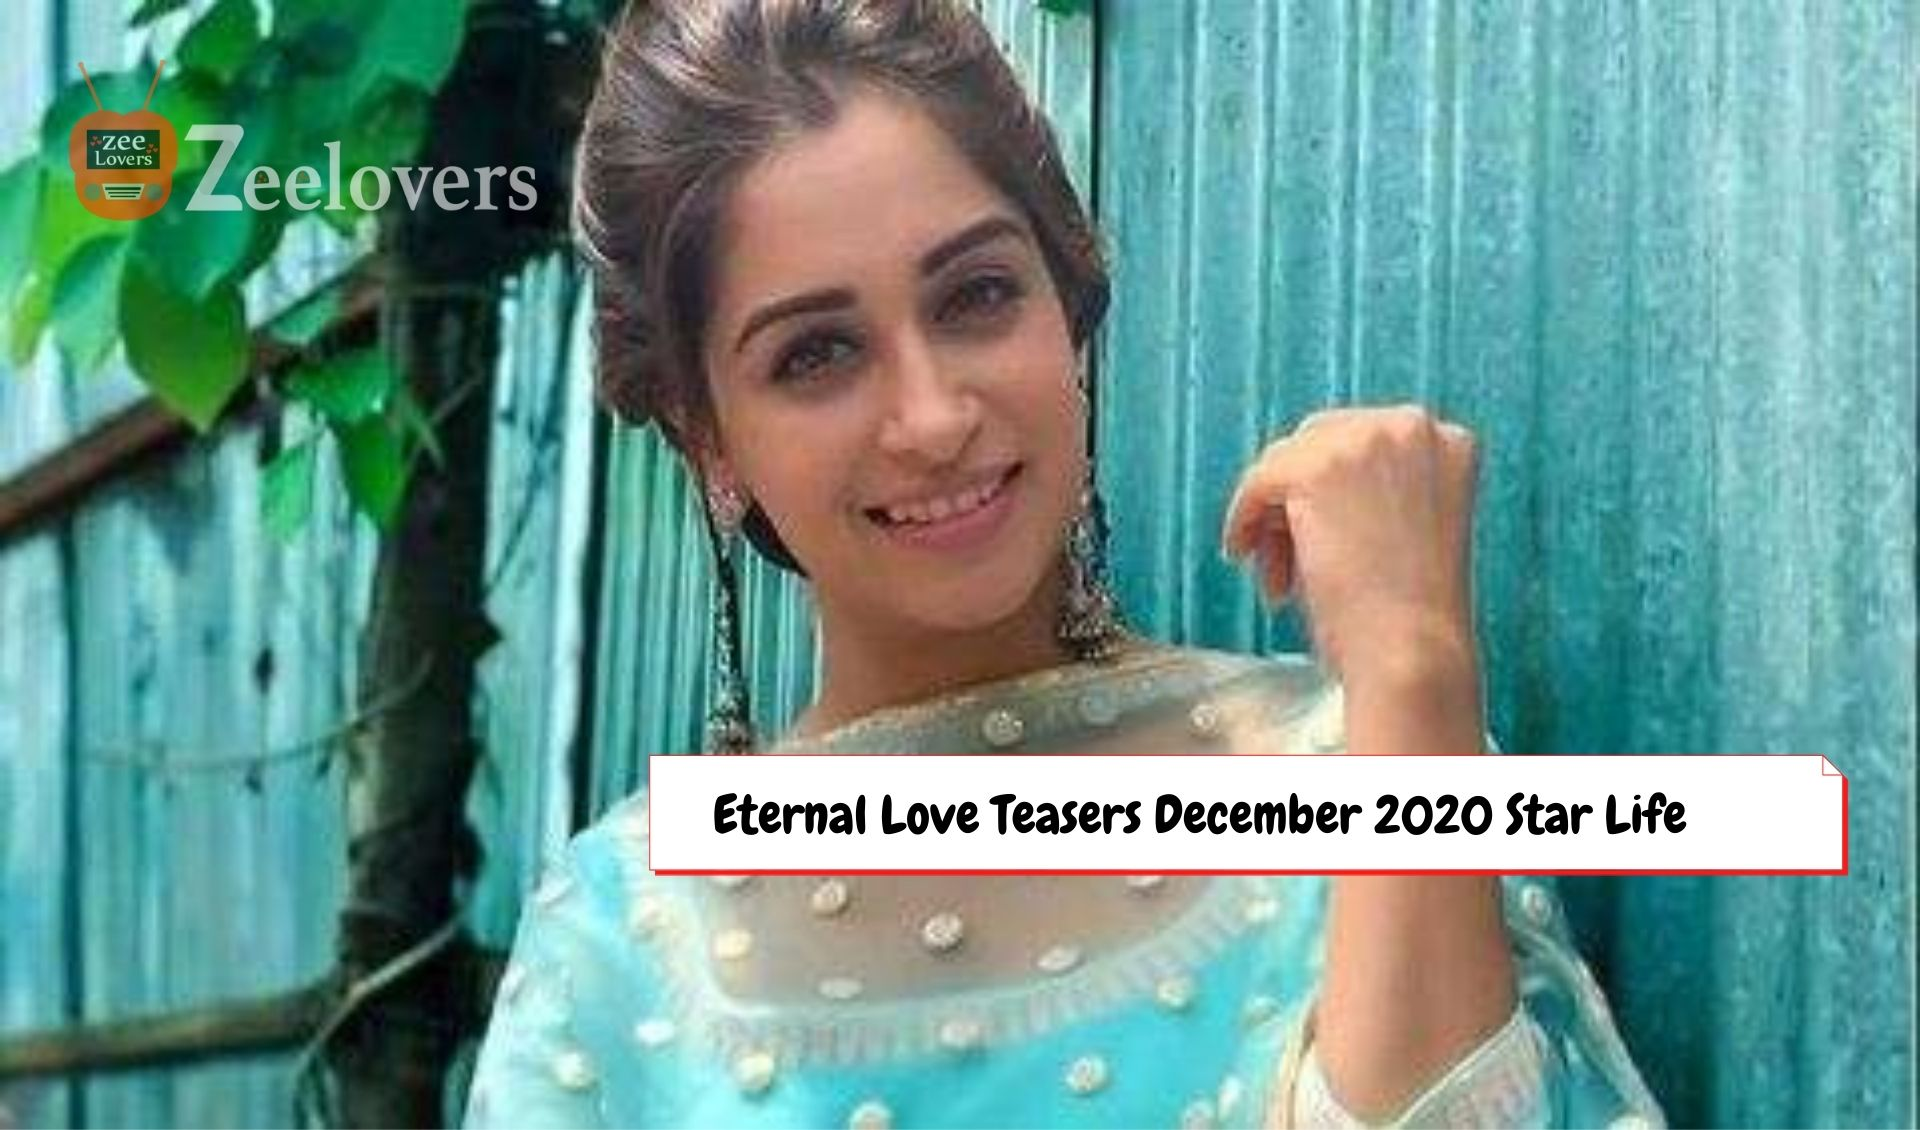 Eternal Love Teasers December 2020 Star Life